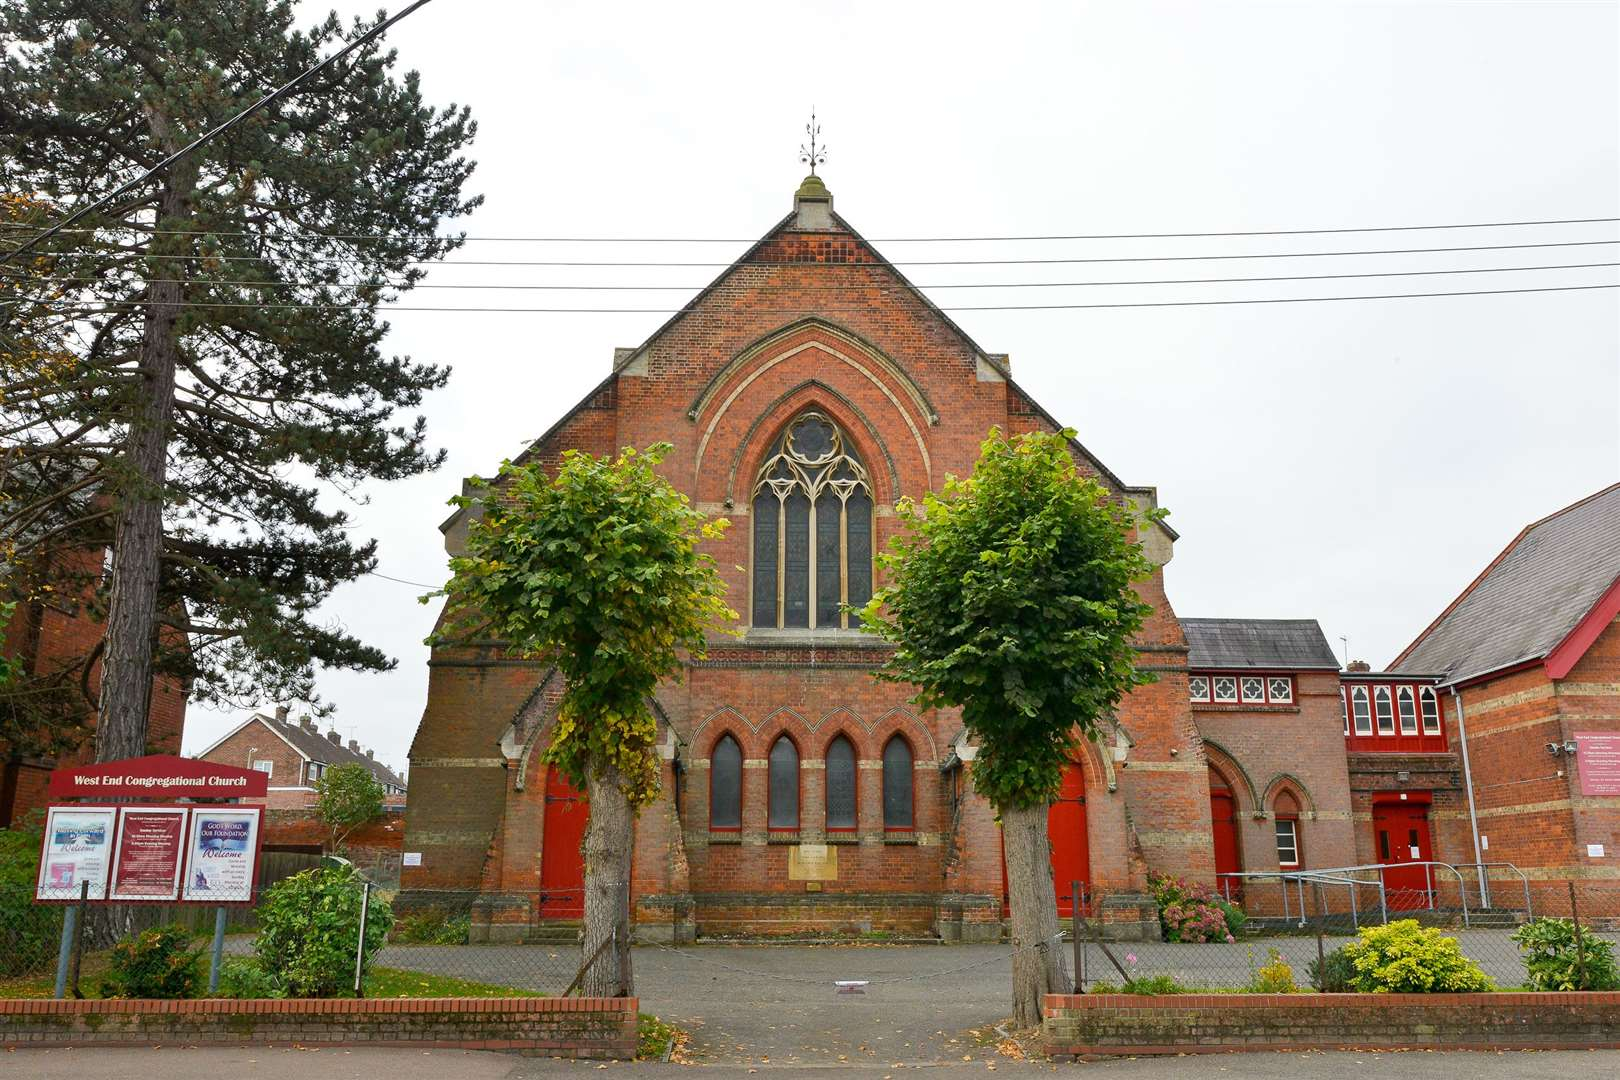 West End Congregational Church in Withersfield Road, Haverhill